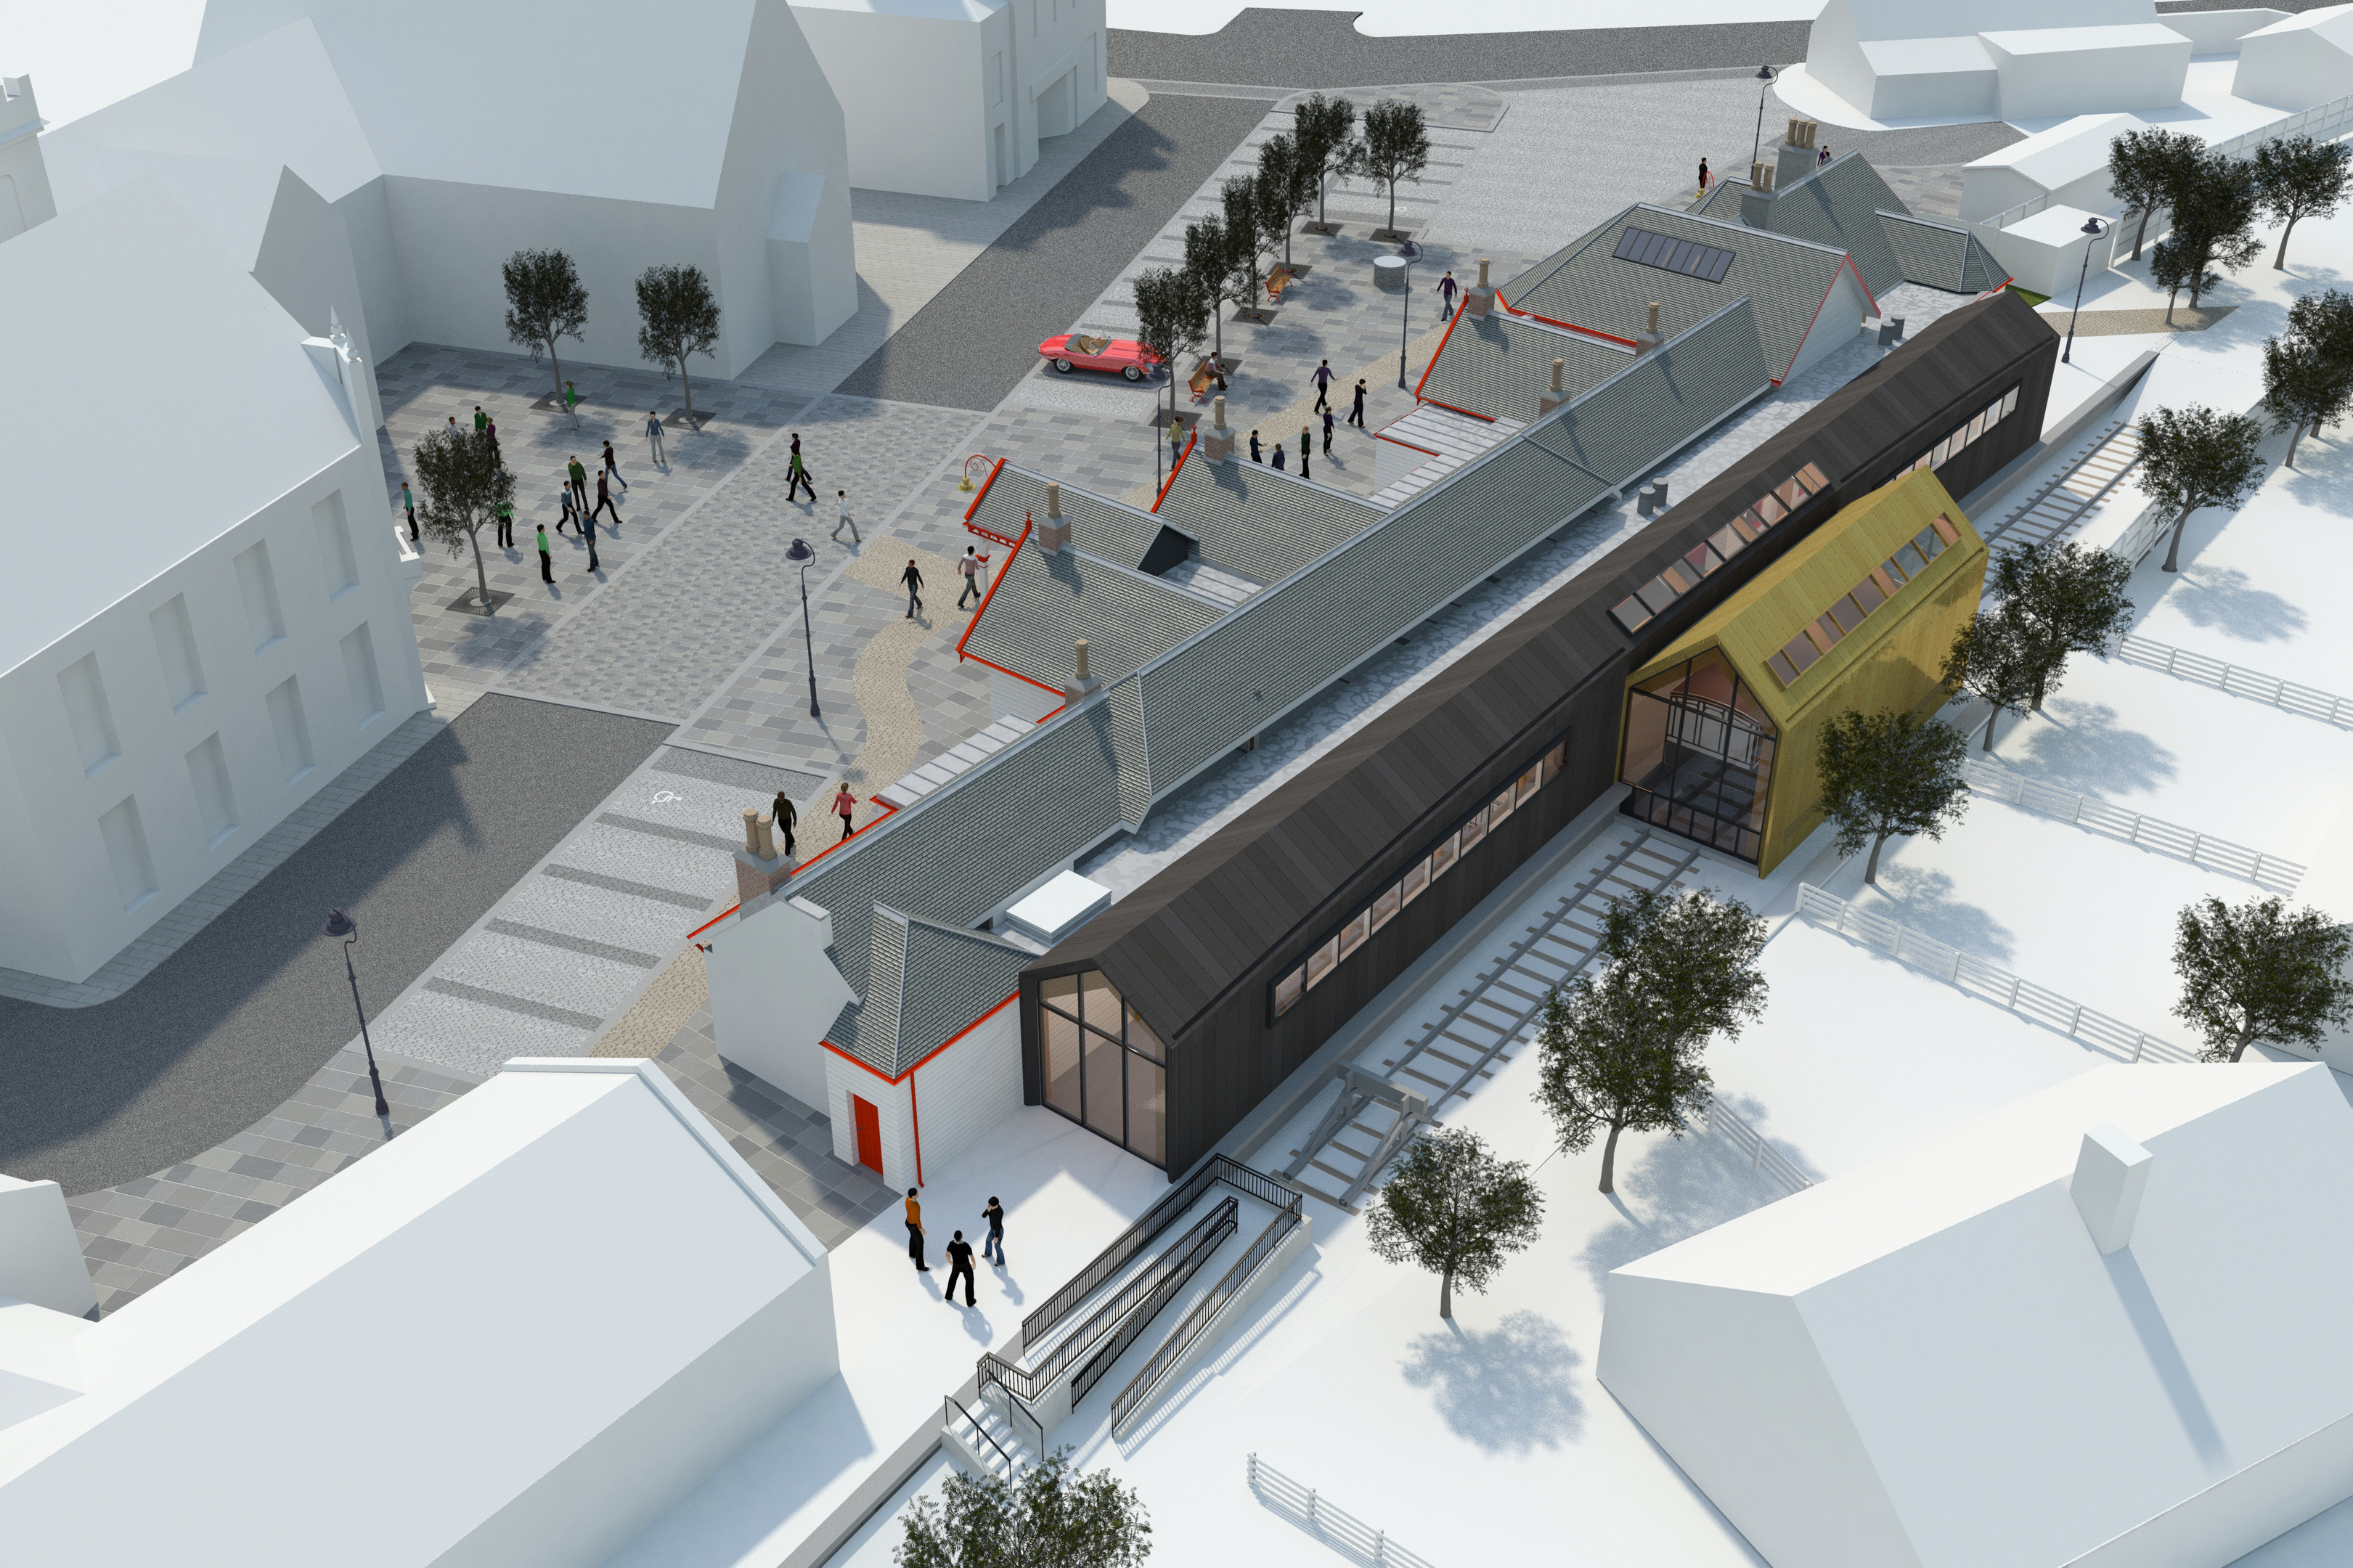 NEW LOOK:Artist's impressions of the new station. images courtesy of halliday fraser munro